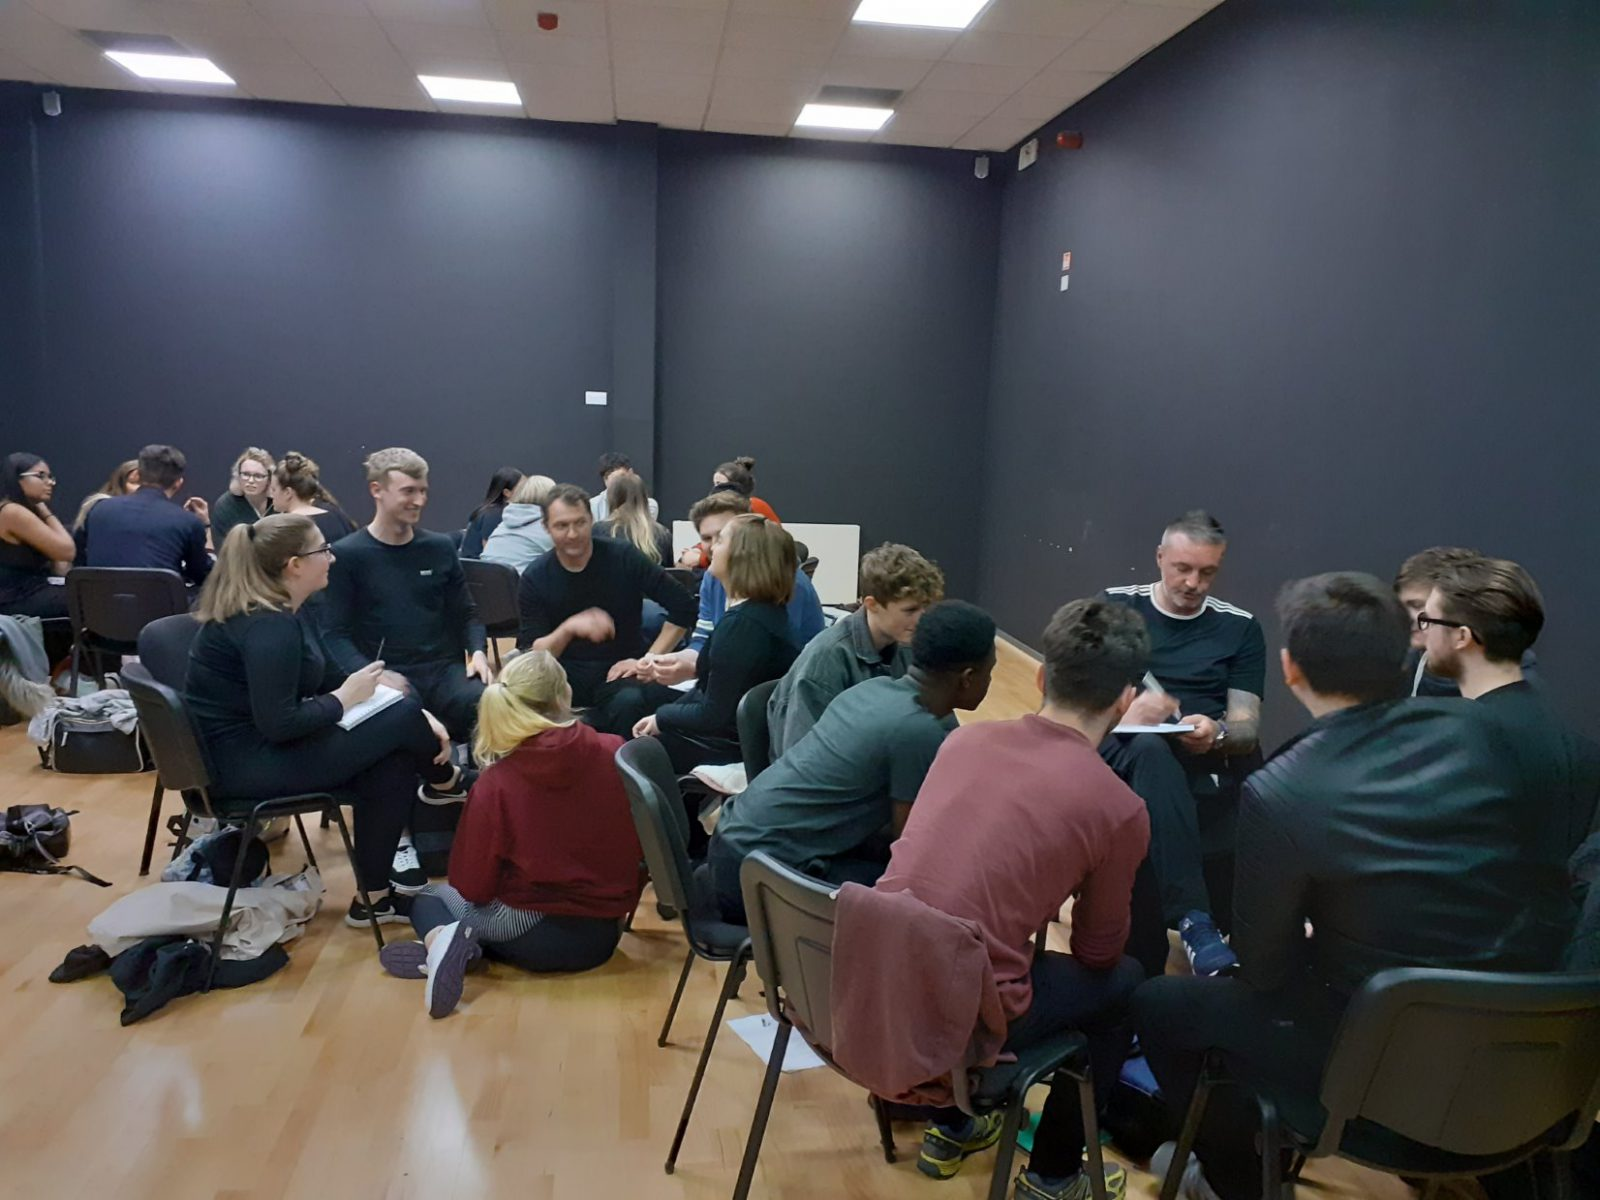 Students involved in discussion groups